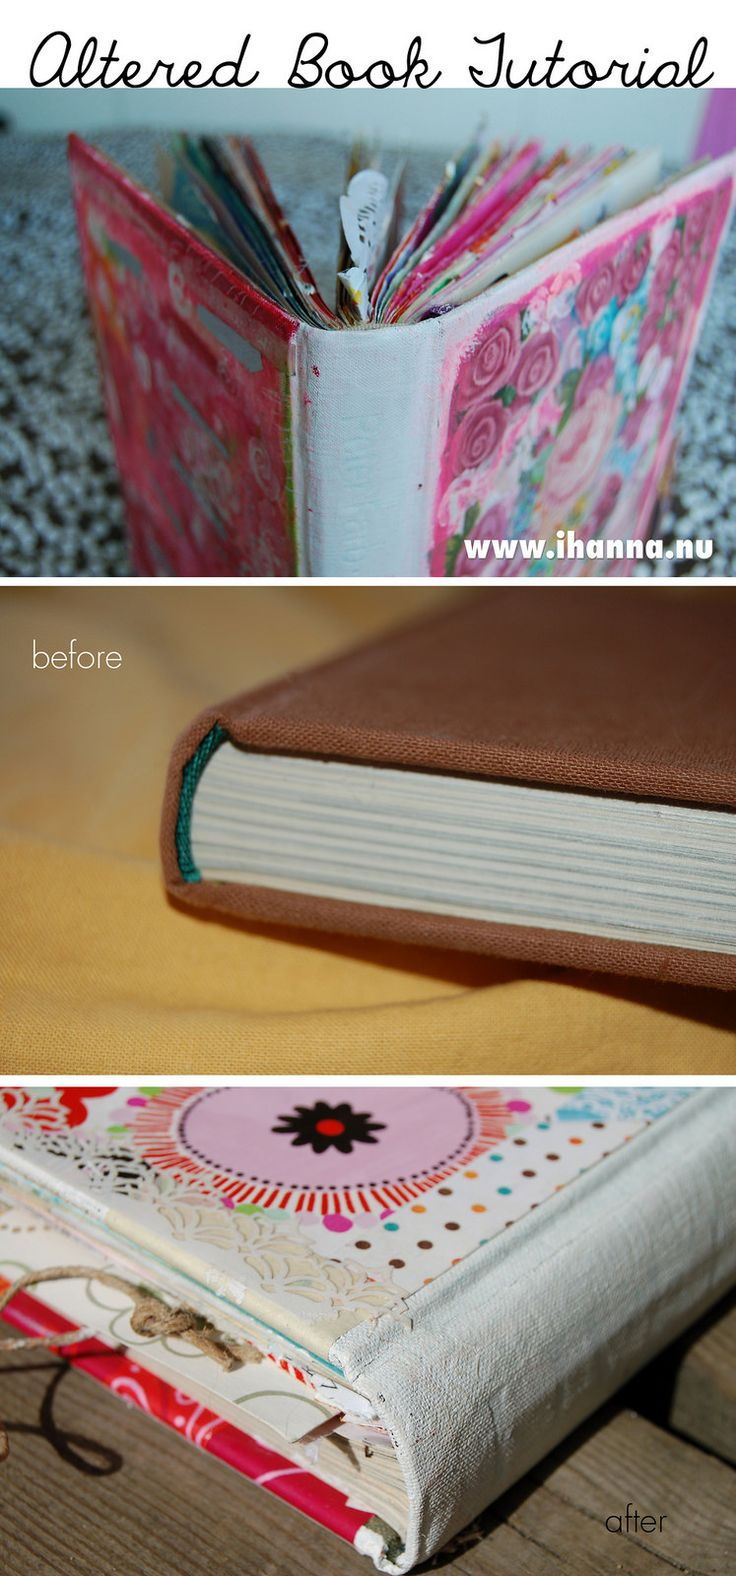 It's time for a tutorial on how to alter a vintage book and make it into your very own, personalized art journal! How to by iHanna of www.ihanna.nu